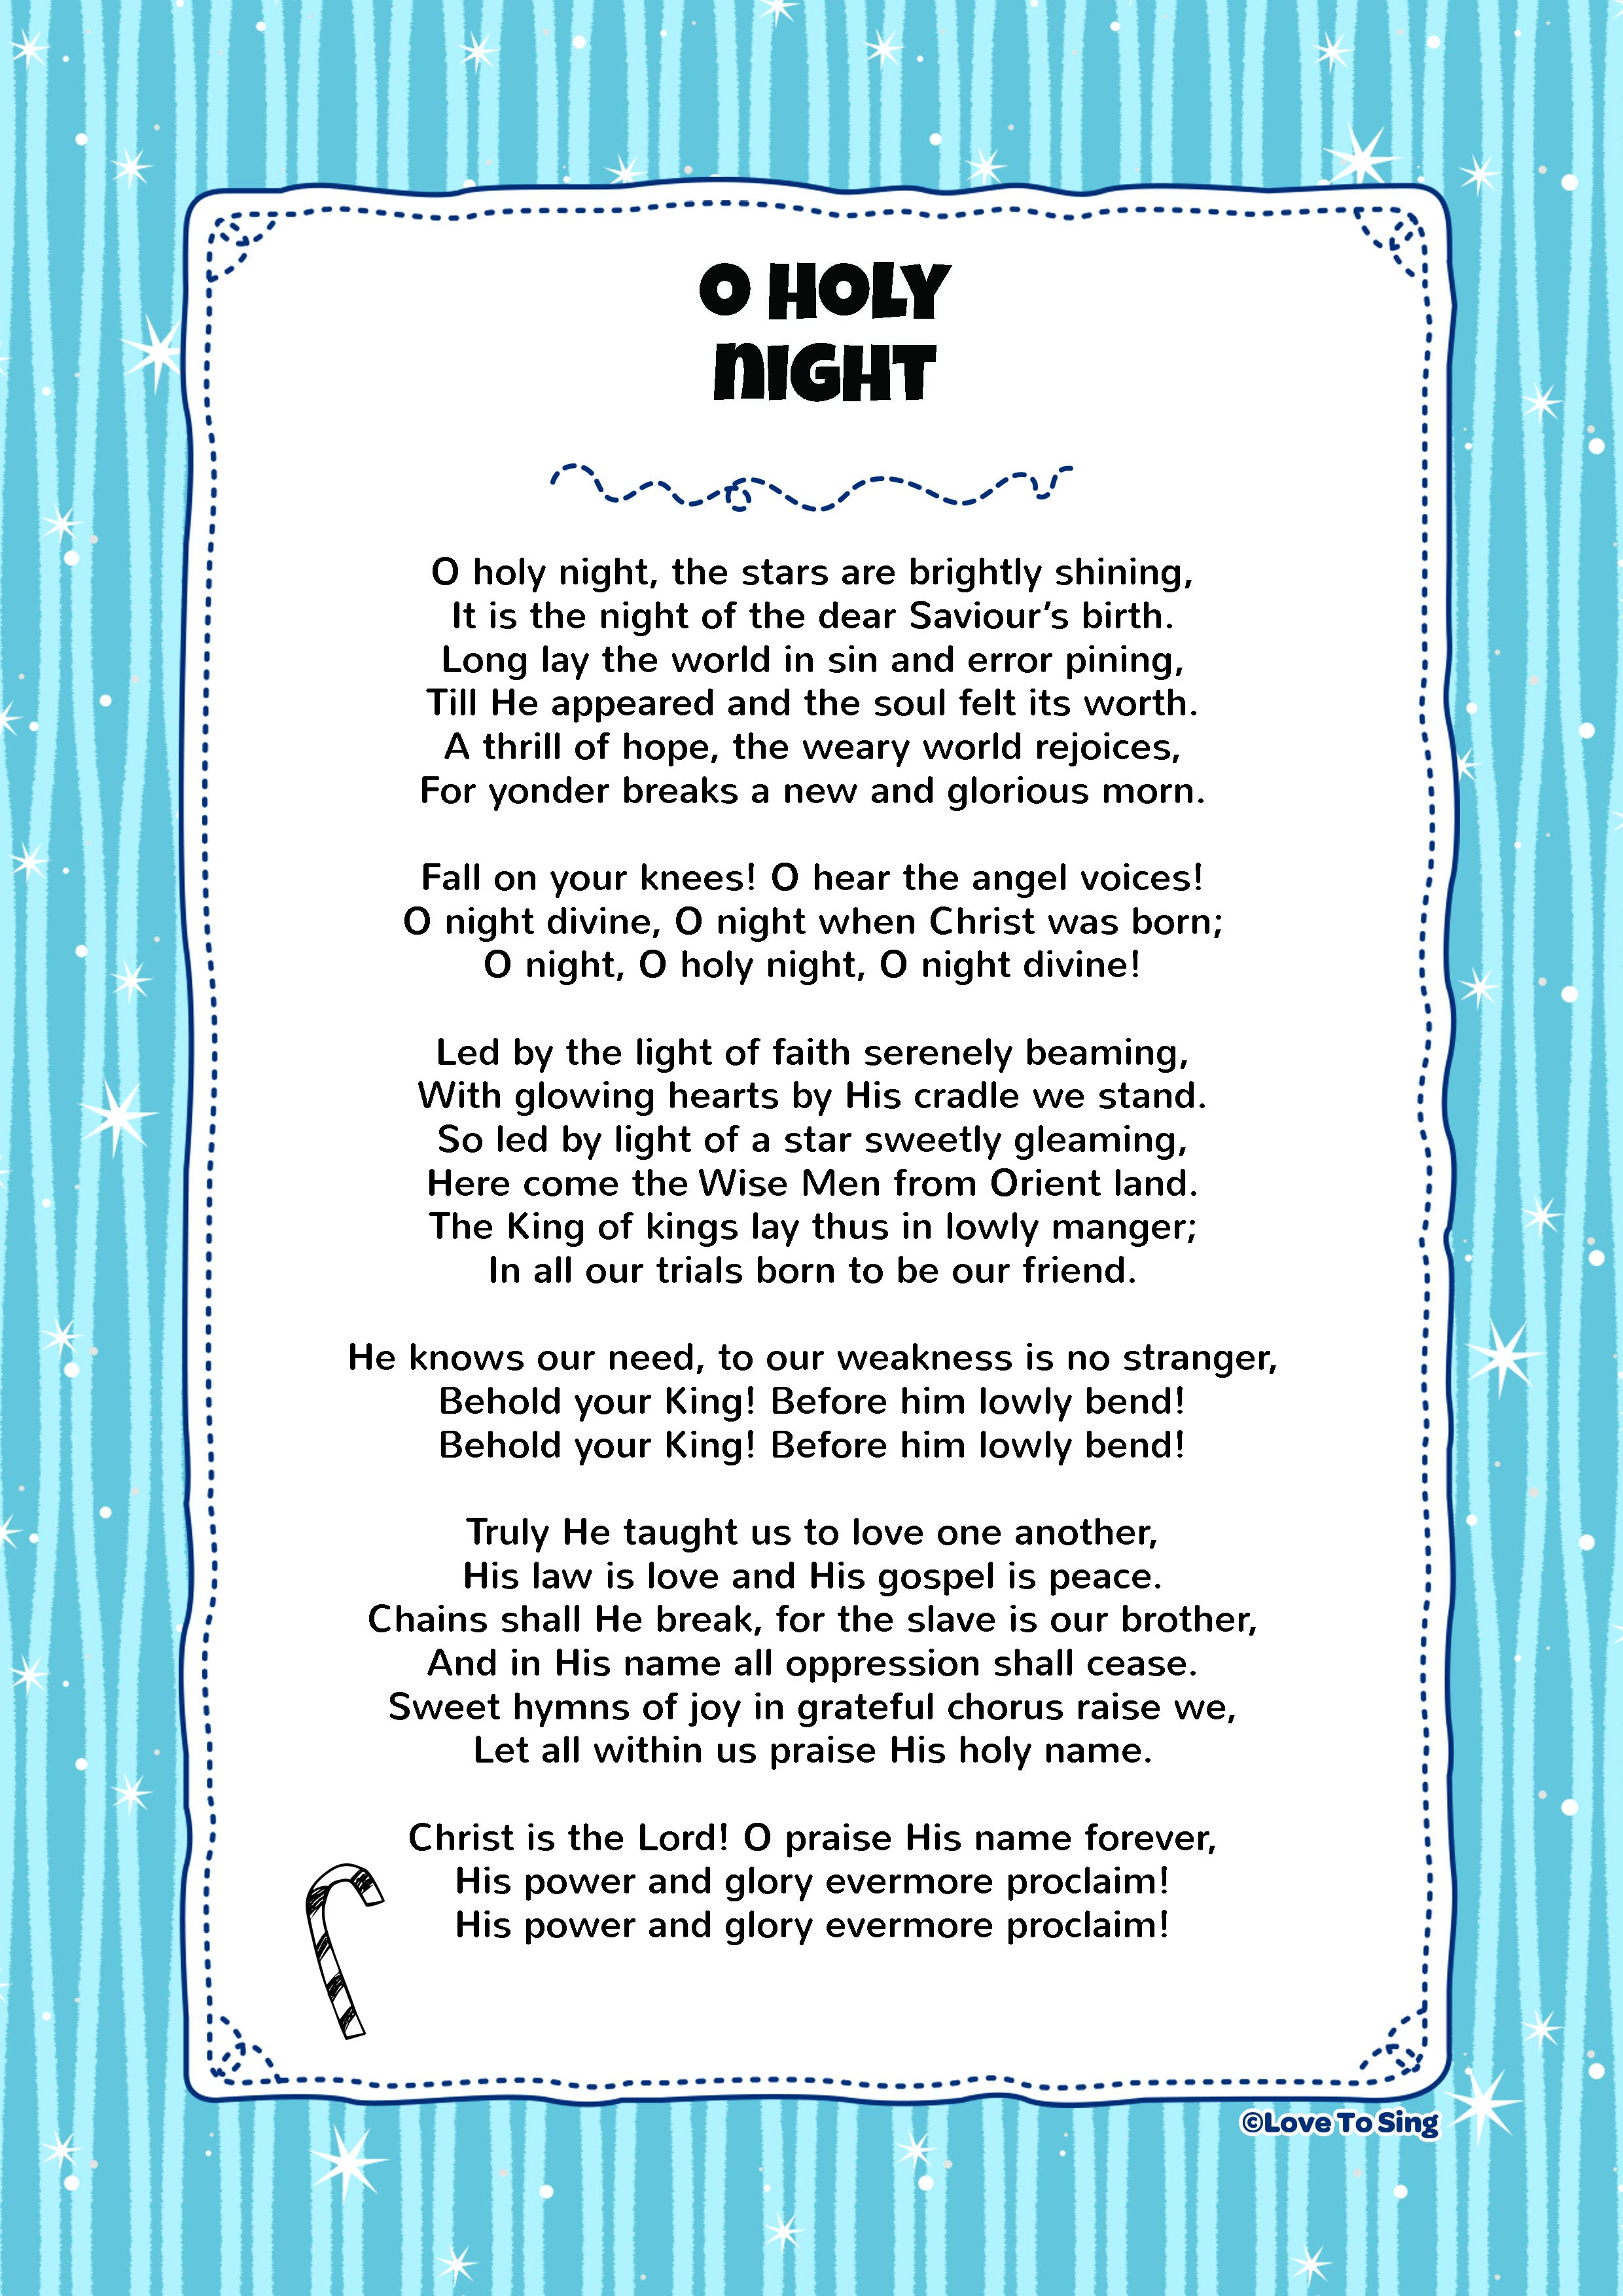 O Holy Night | Kids Video Song with FREE Lyrics & Activities!